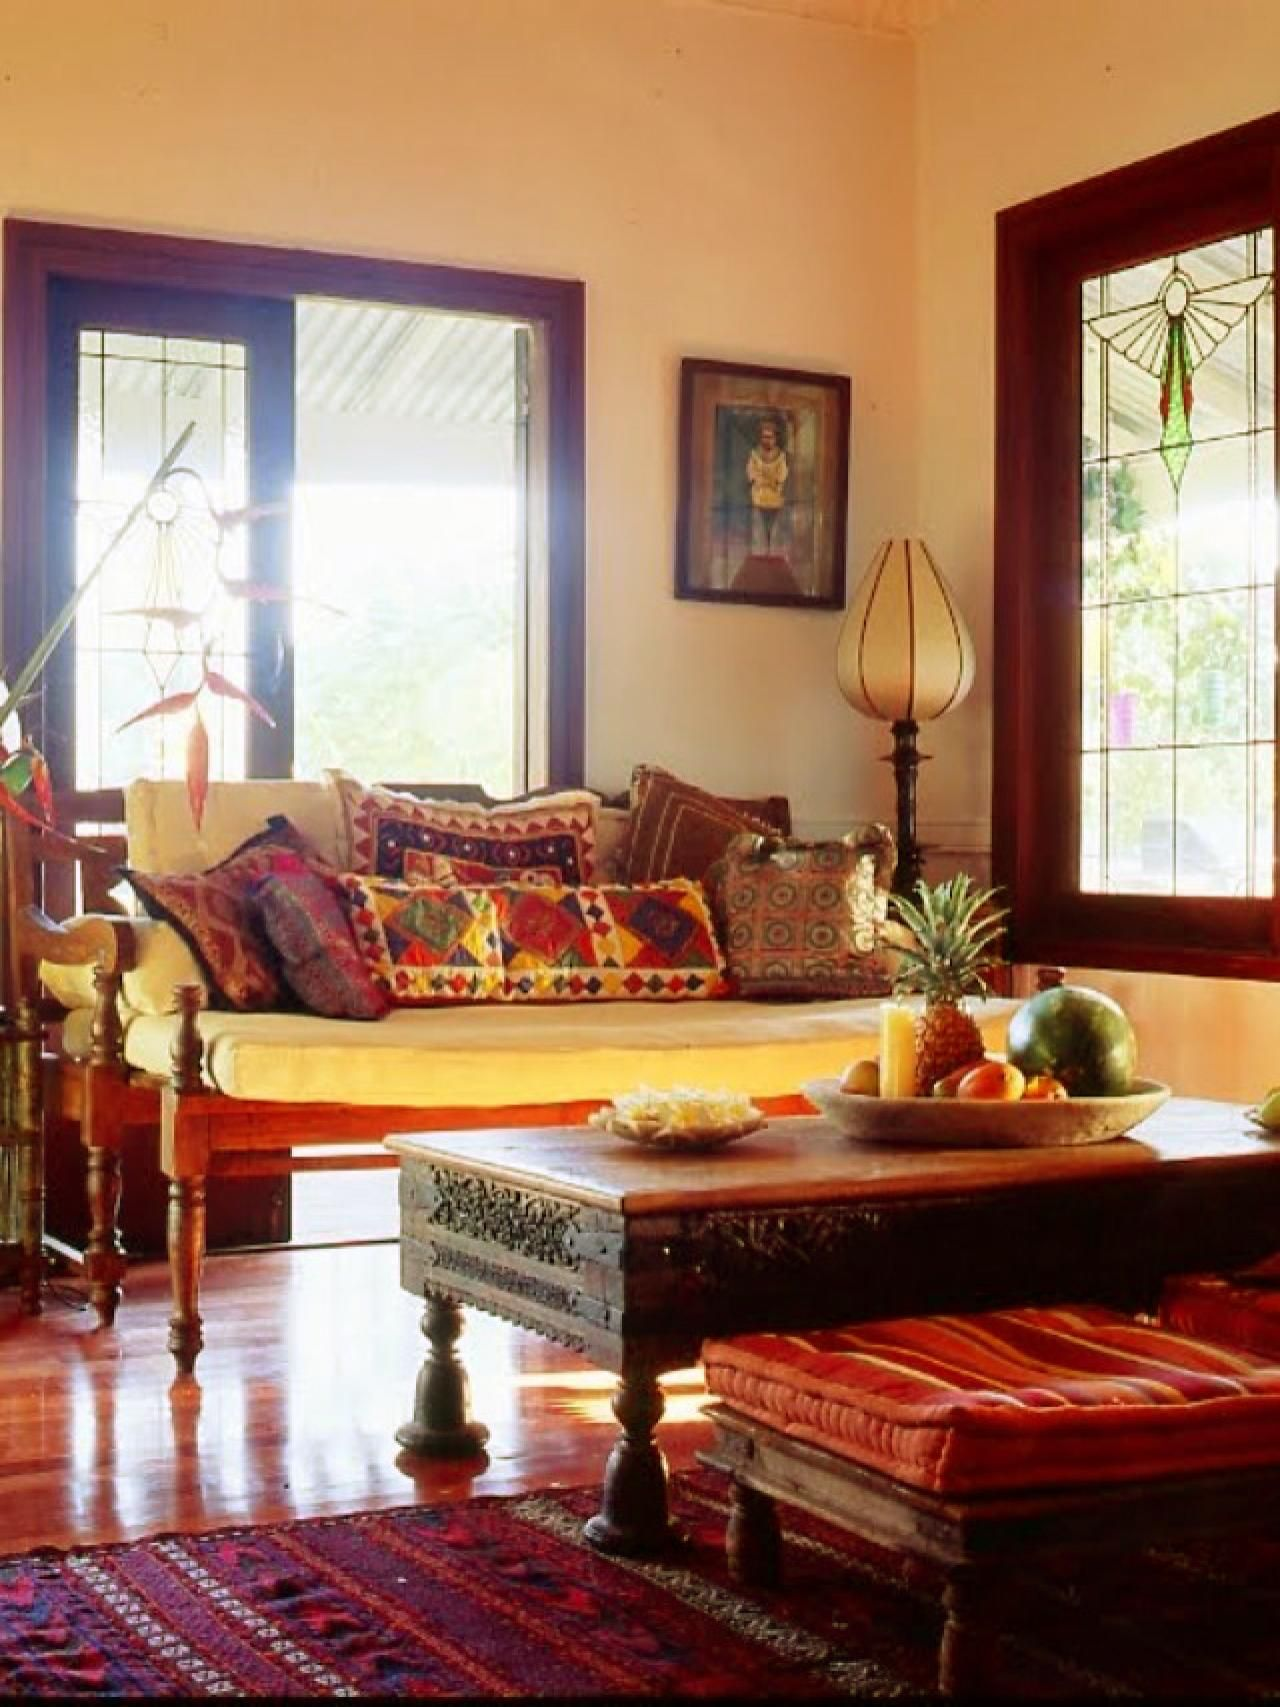 Best Interior Design Ideas Living Room: 12 Spaces Inspired By India